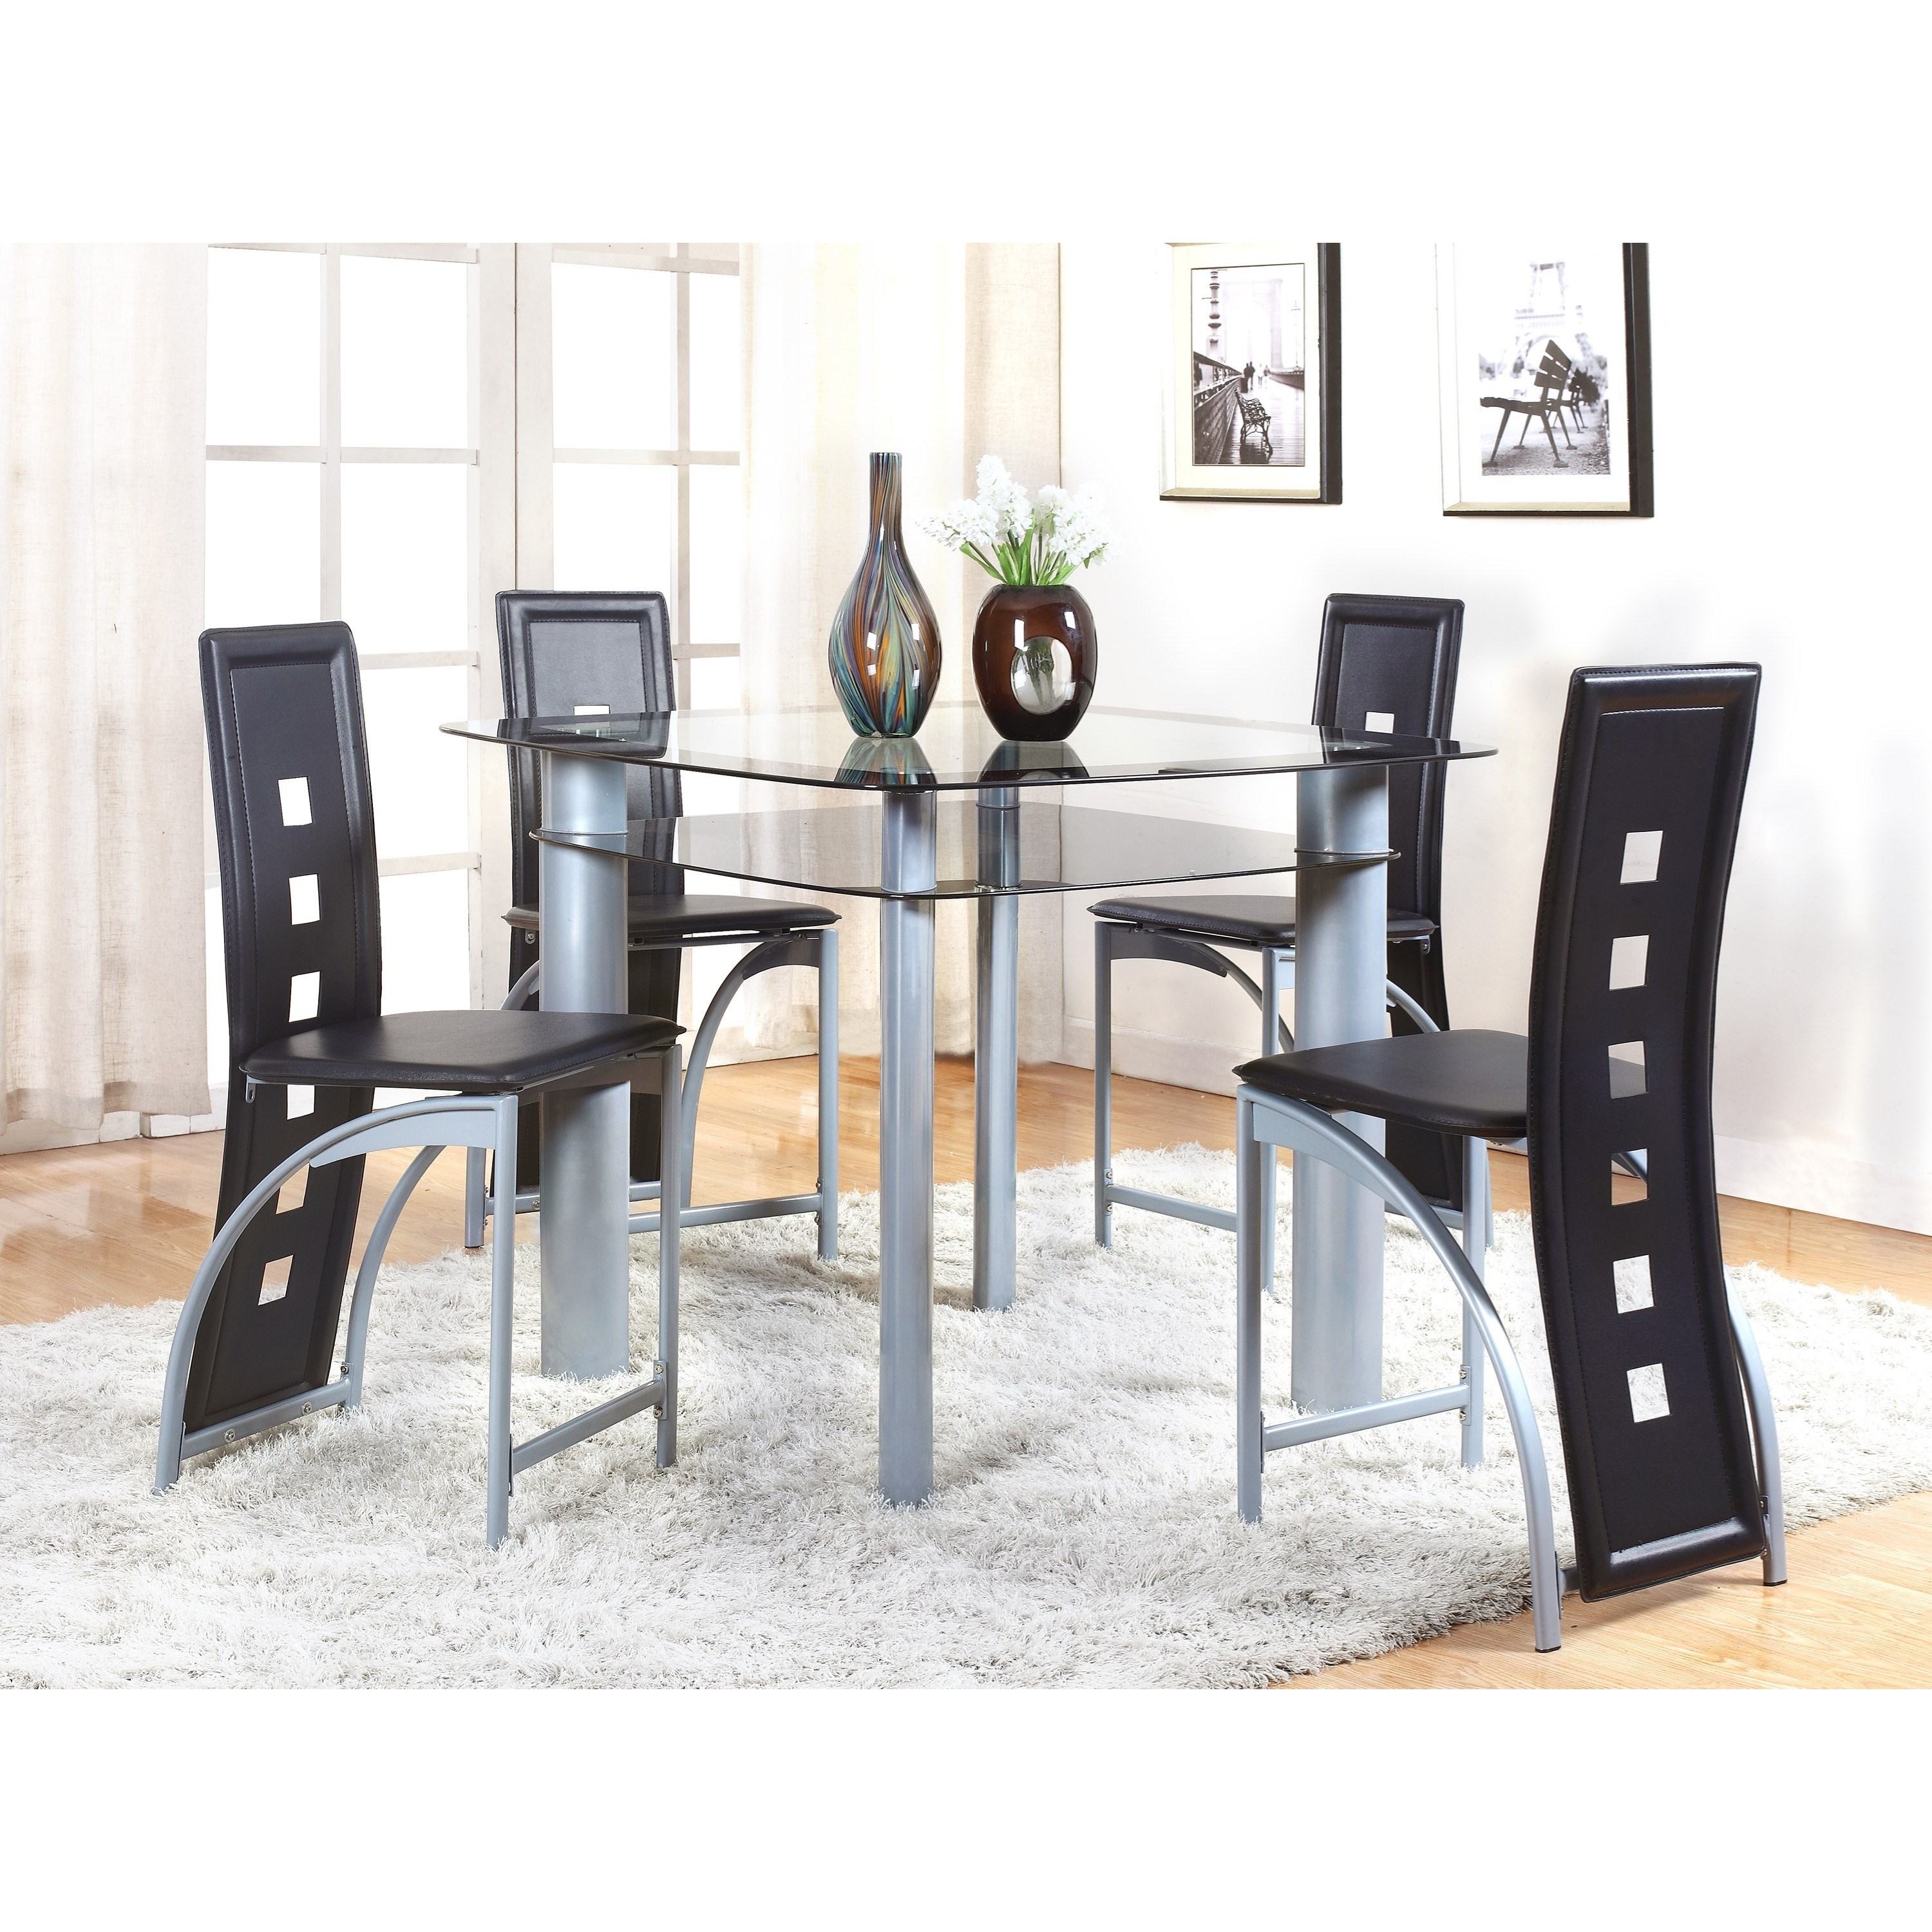 Echo 5 Piece Counter Table and Chair Set by Crown Mark at Northeast Factory Direct